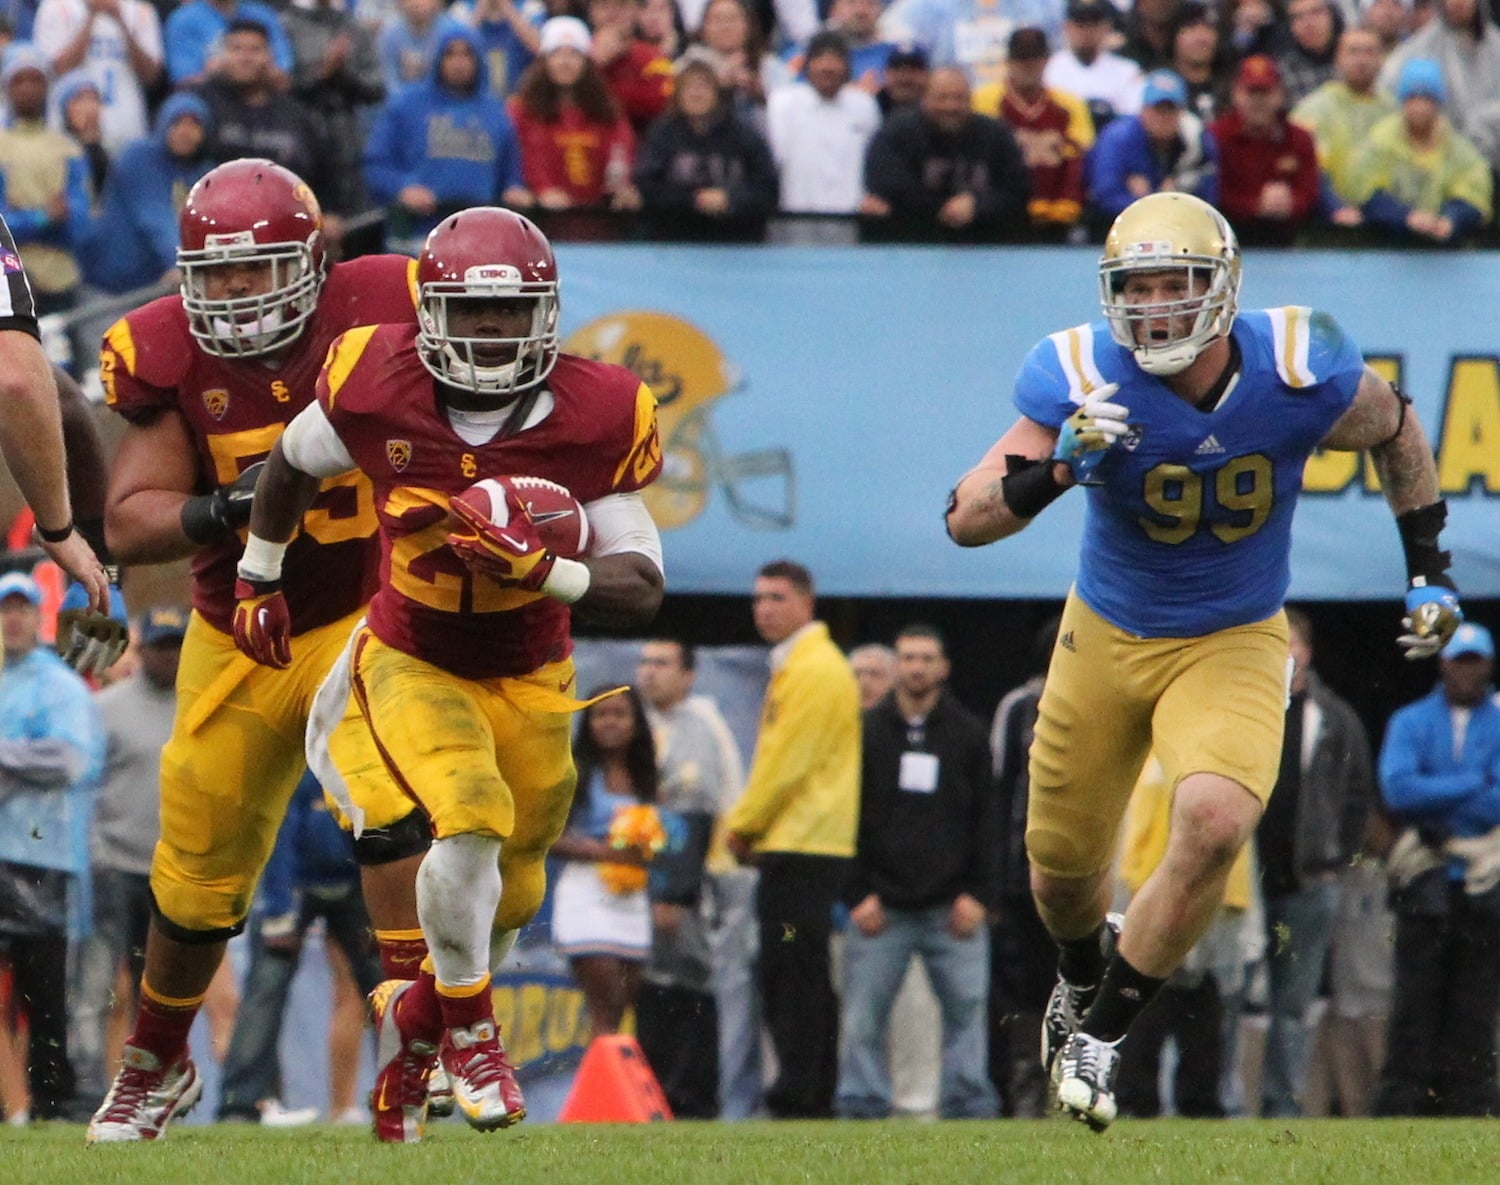 NCAA Week 13 Bets: 3 Of The Best Parlays That Will Make You Money